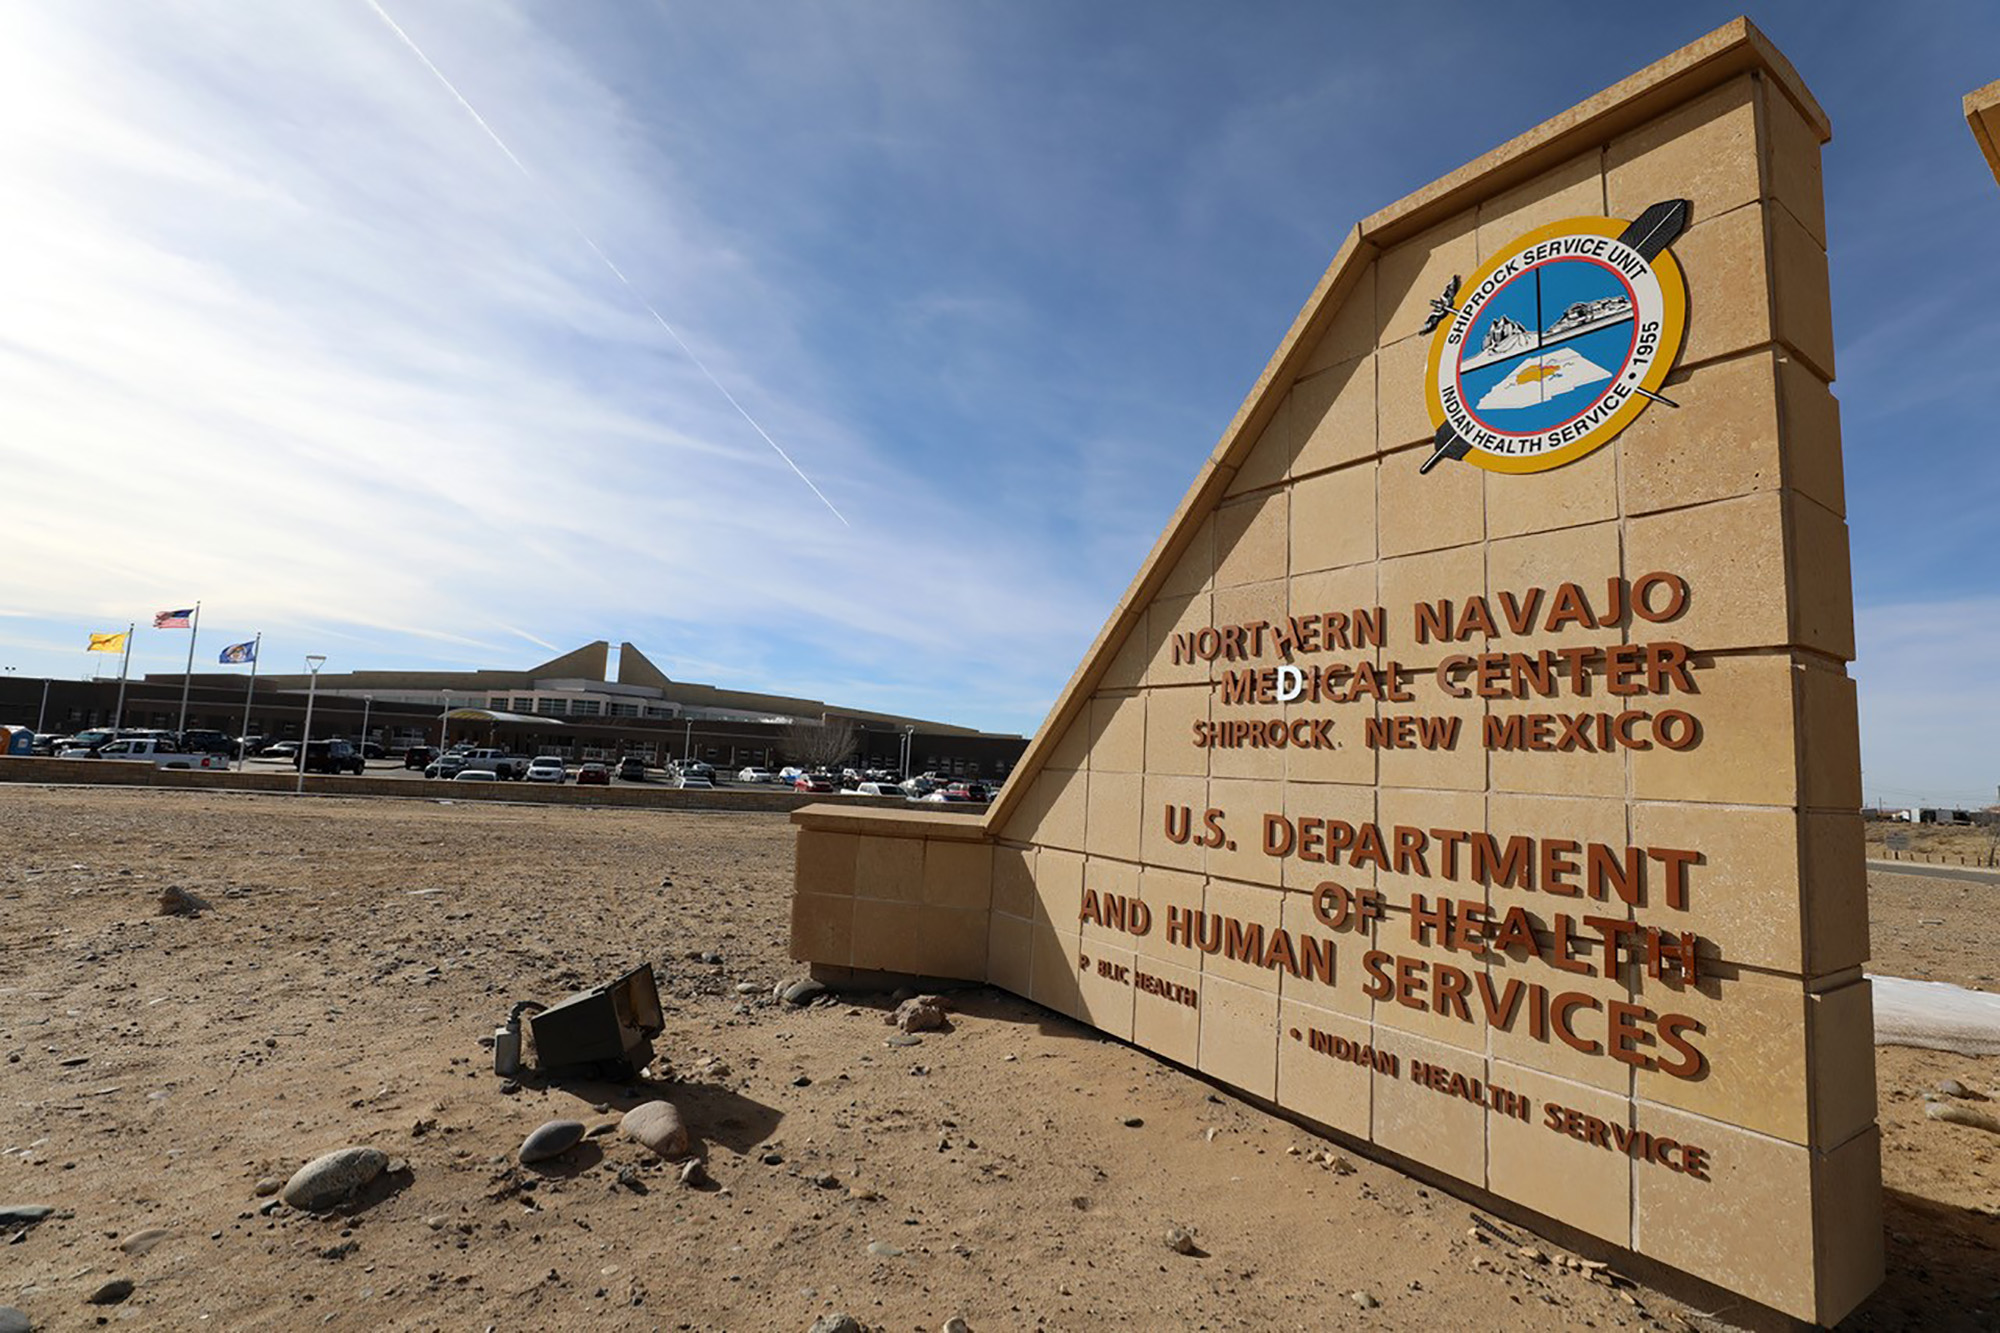 The Northern Navajo Medical Center is shown as staff inside begin to receive the COVID-19 vaccine on December 16, in Shiprock, New Mexico.